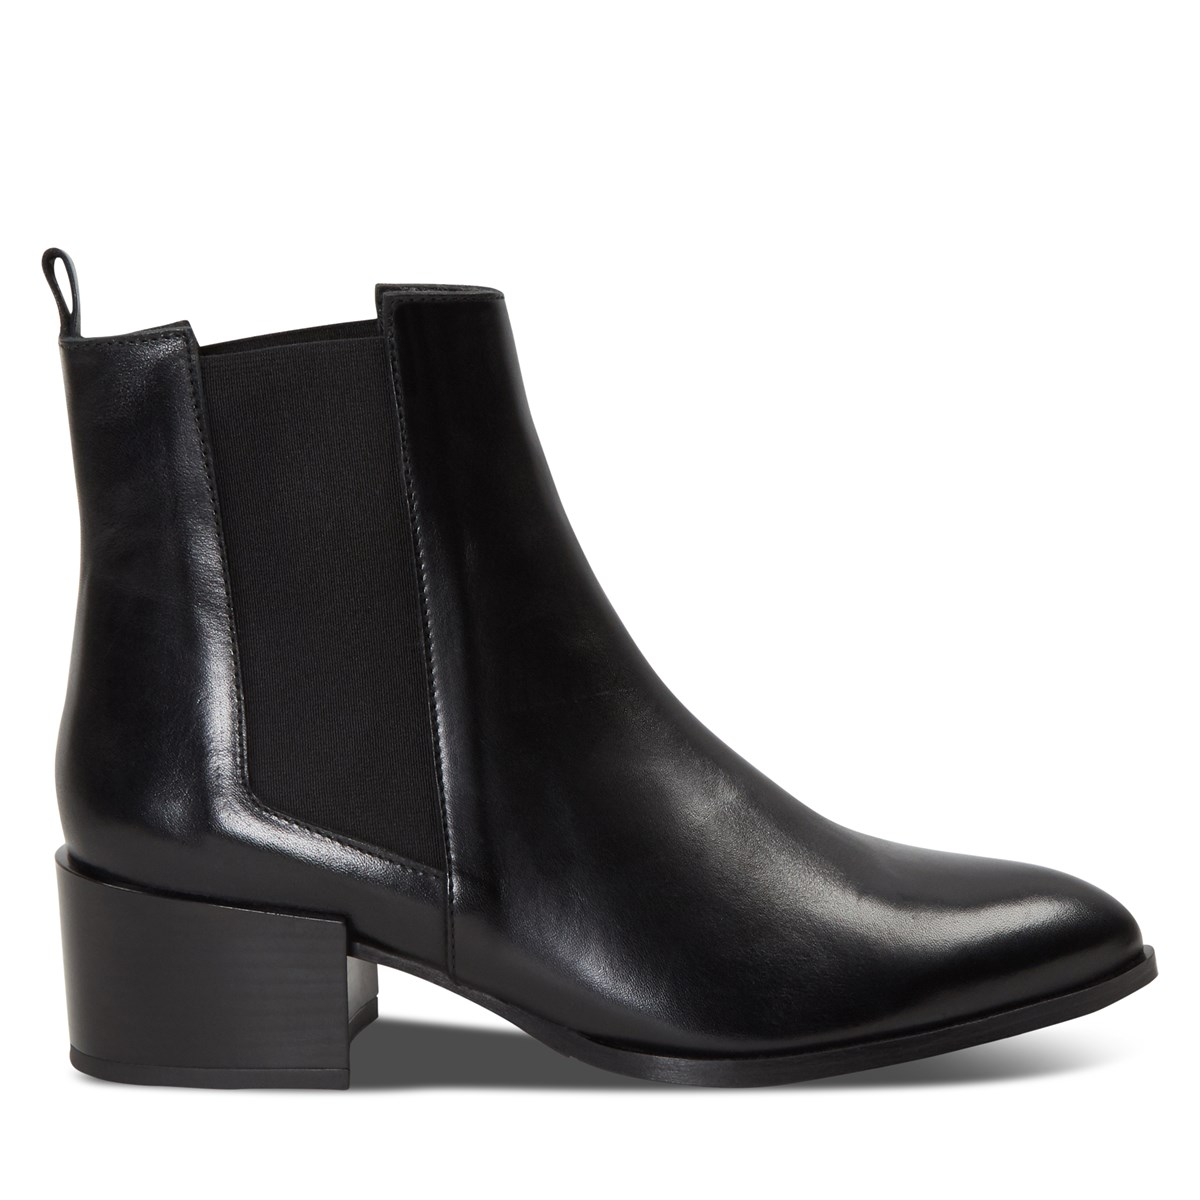 Women's Marnie Slip On Ankle Boots in Black